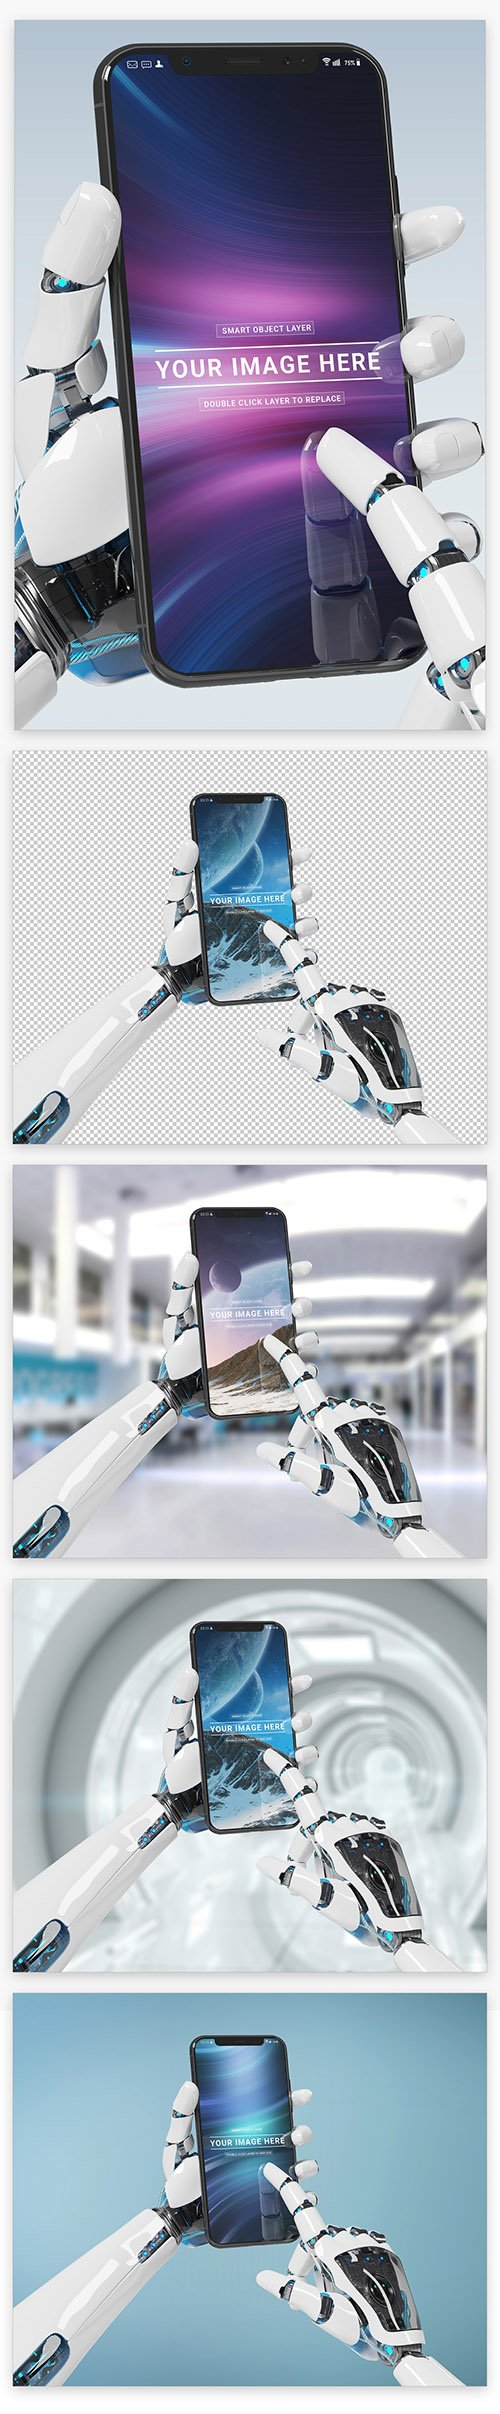 Isolated Smartphone in Robot Hand Mockup 220287945 PSDT